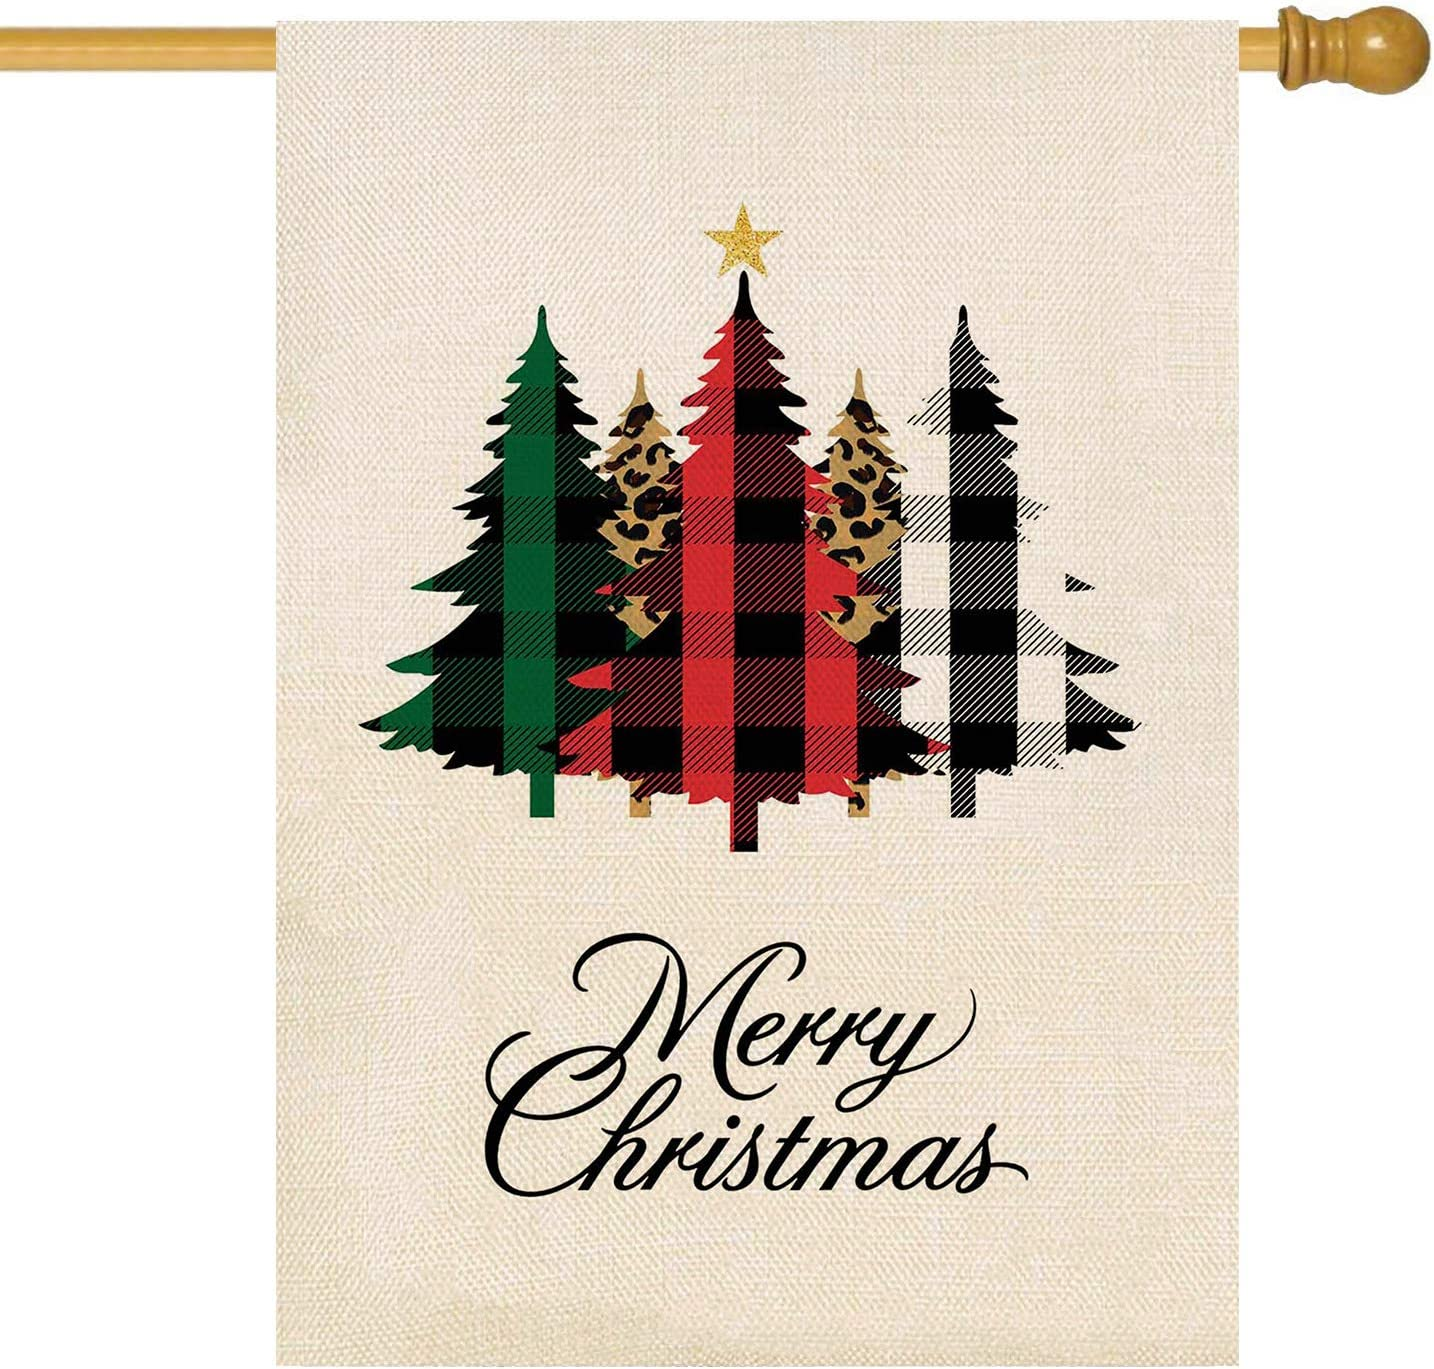 ORTIGIA Merry Christmas Tree Garden House Flag Burlap Vertical Double Sided Buffalo Check Plaid Tree Farmhouse Xmas Winter Holiday Small Yard Flag Lawn Outdoor Home Indoor Decoration 28x40inch